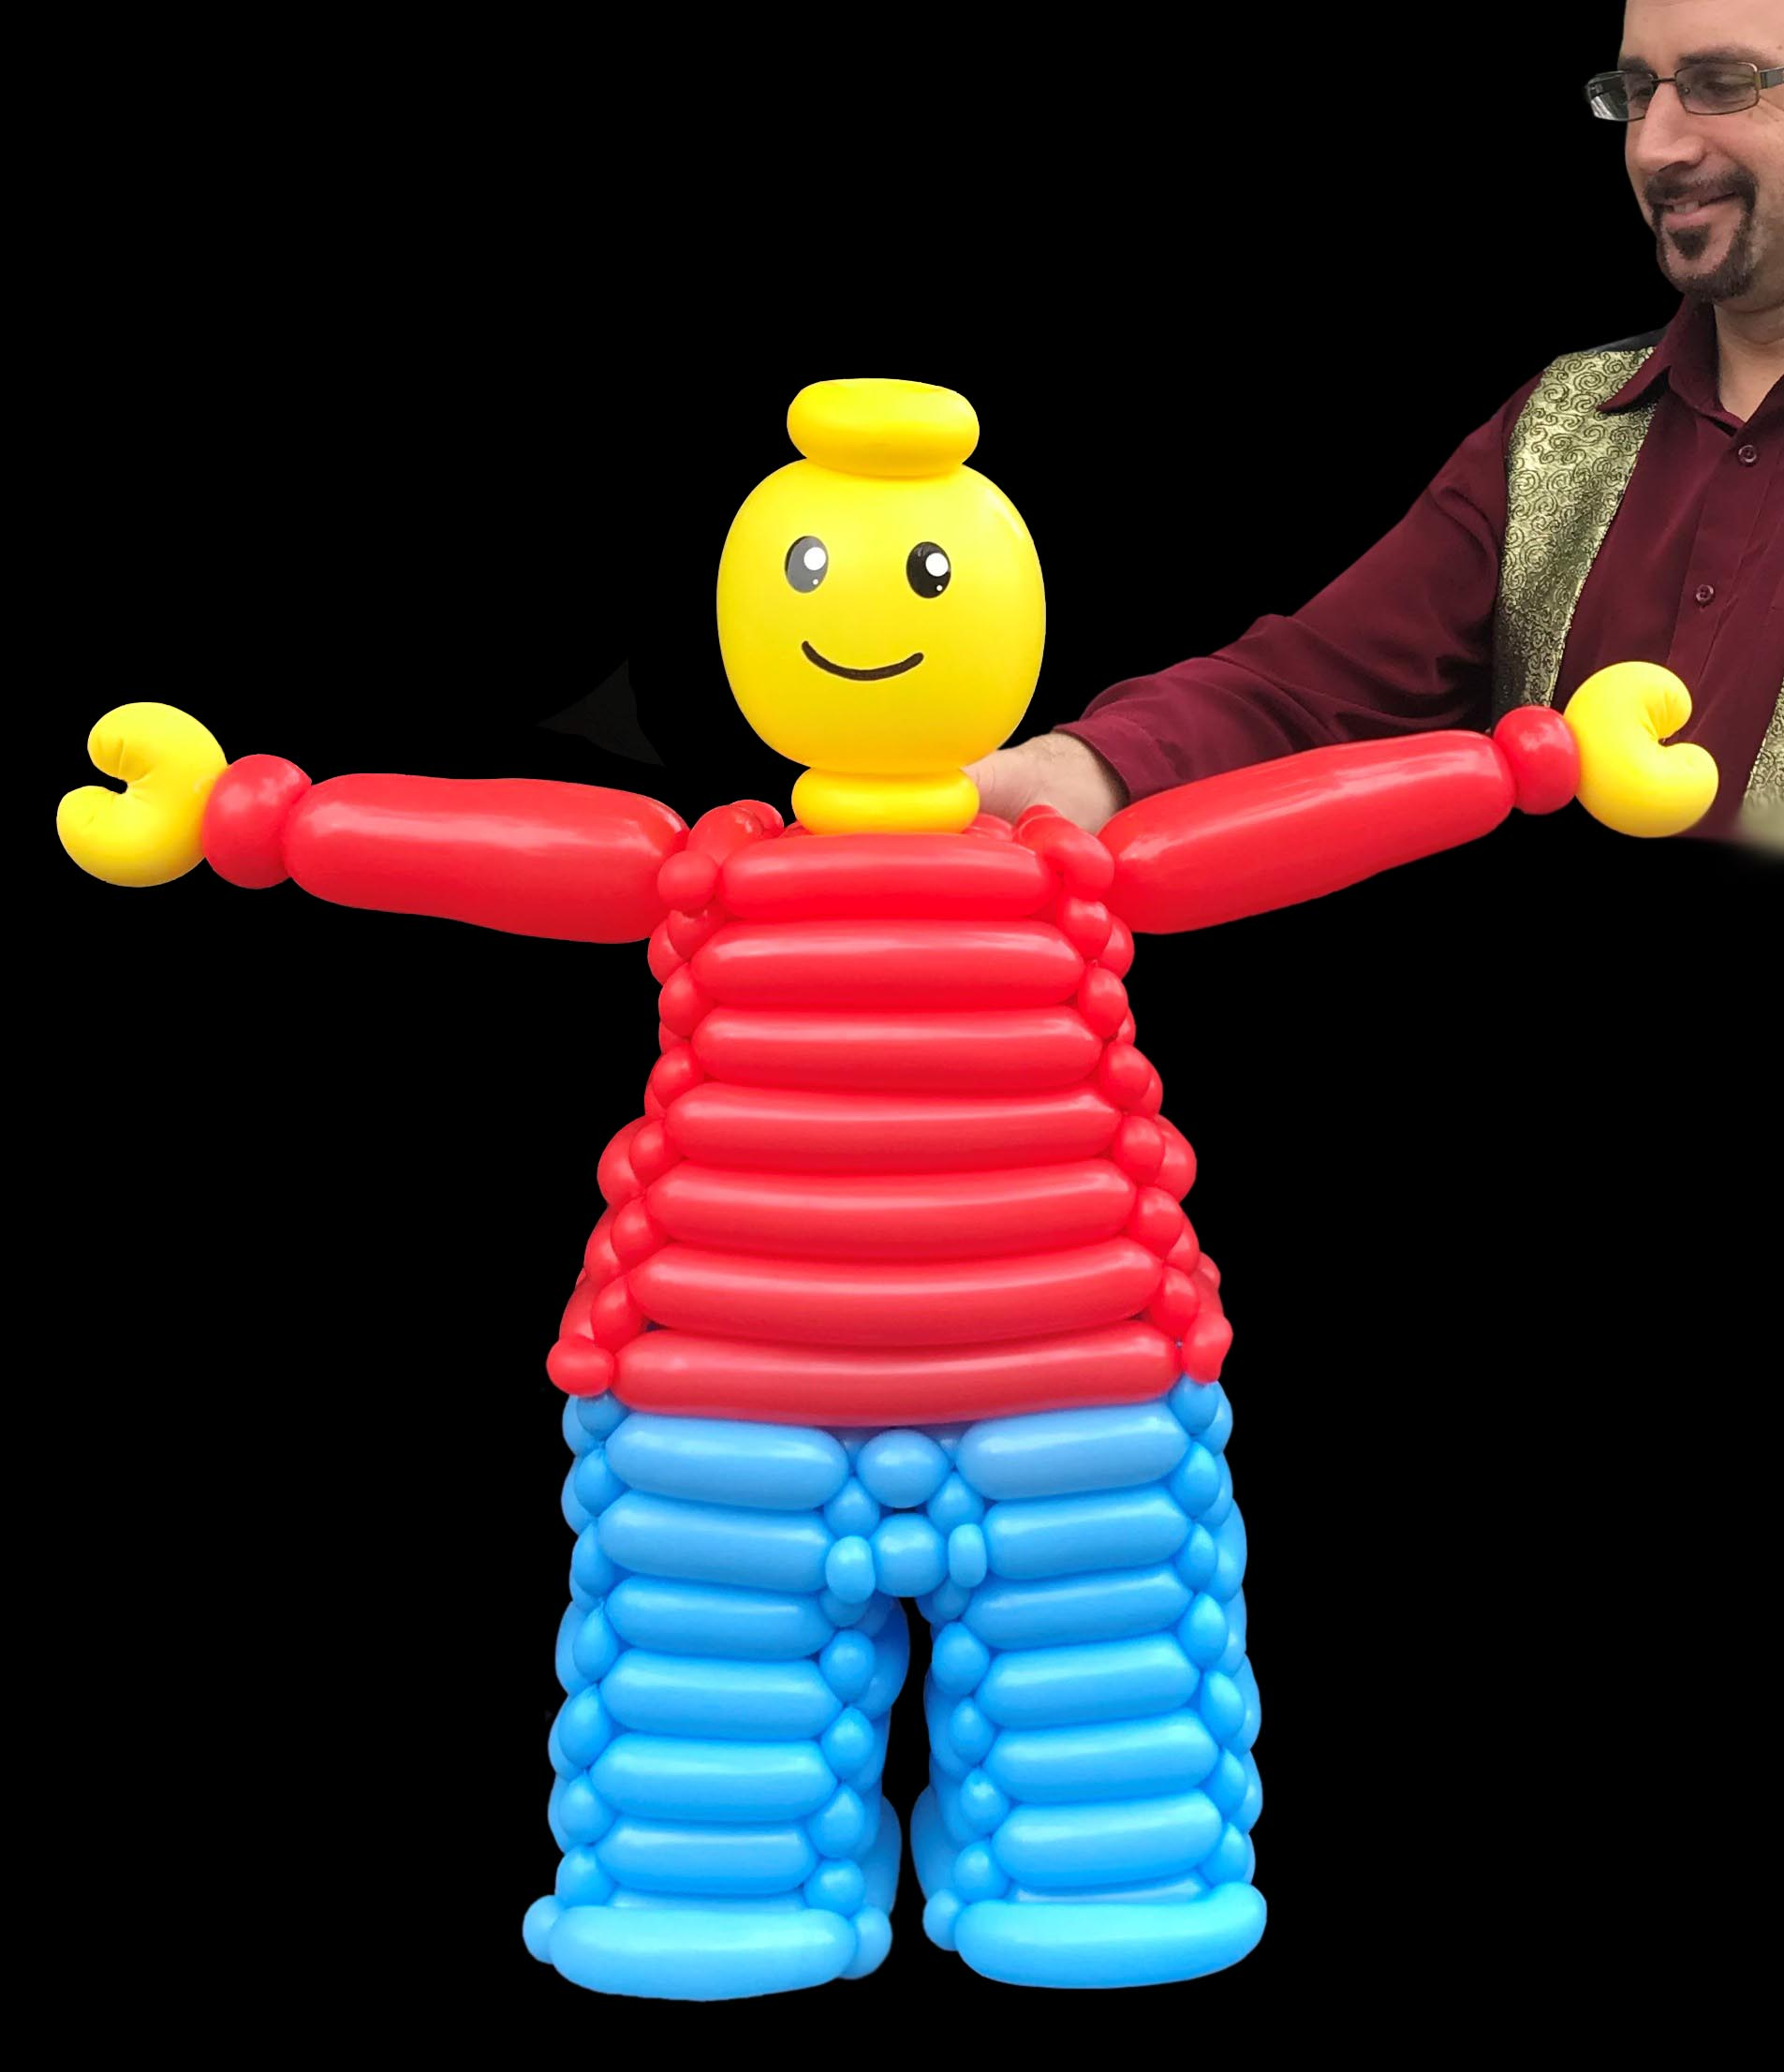 LegoMan-and-Charles-cropped